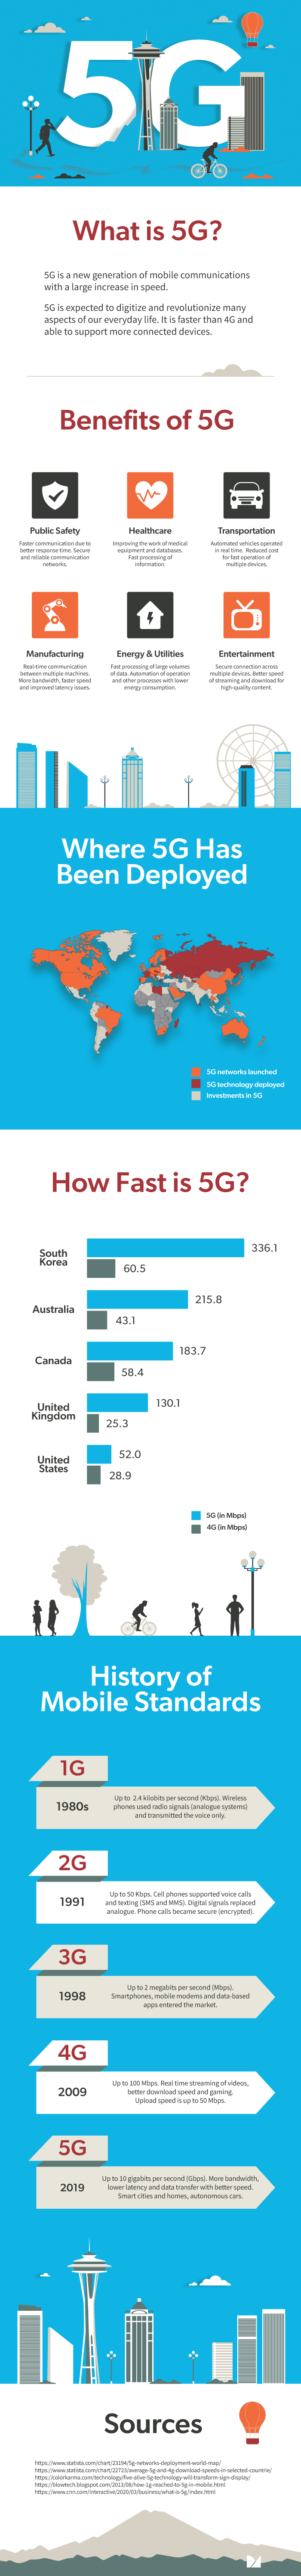 5G infographics and statistics